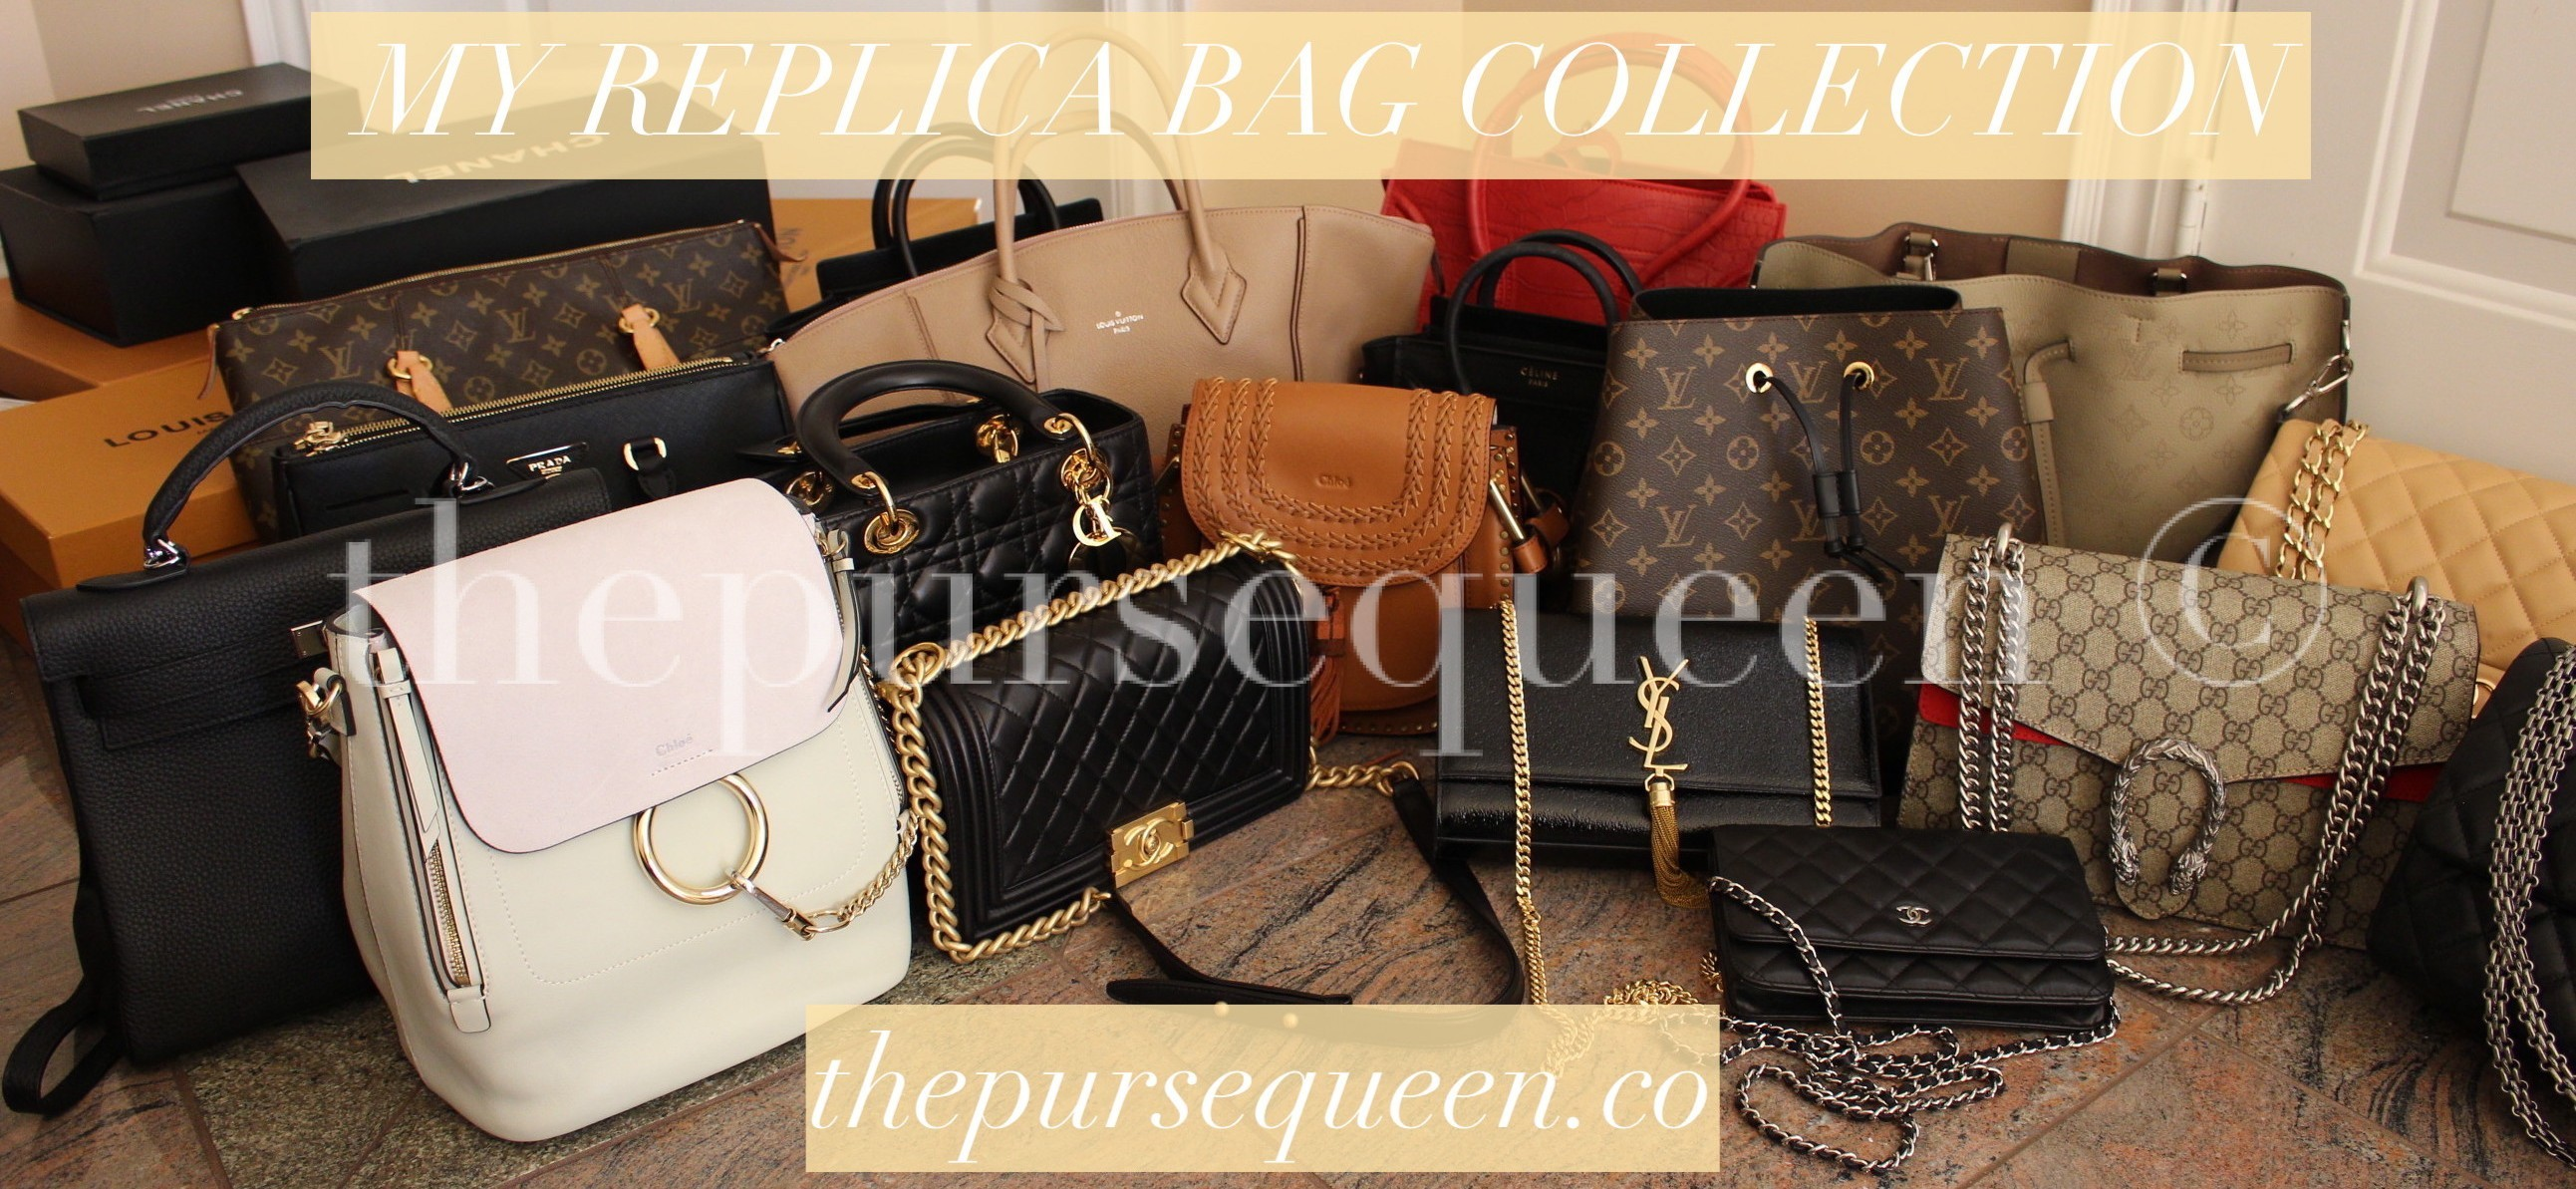 95a3b1f5ff0 RECOMMENDED REPLICA SELLERS LIST - Authentic   Replica Handbag Reviews by  The Purse Queen  replicabag